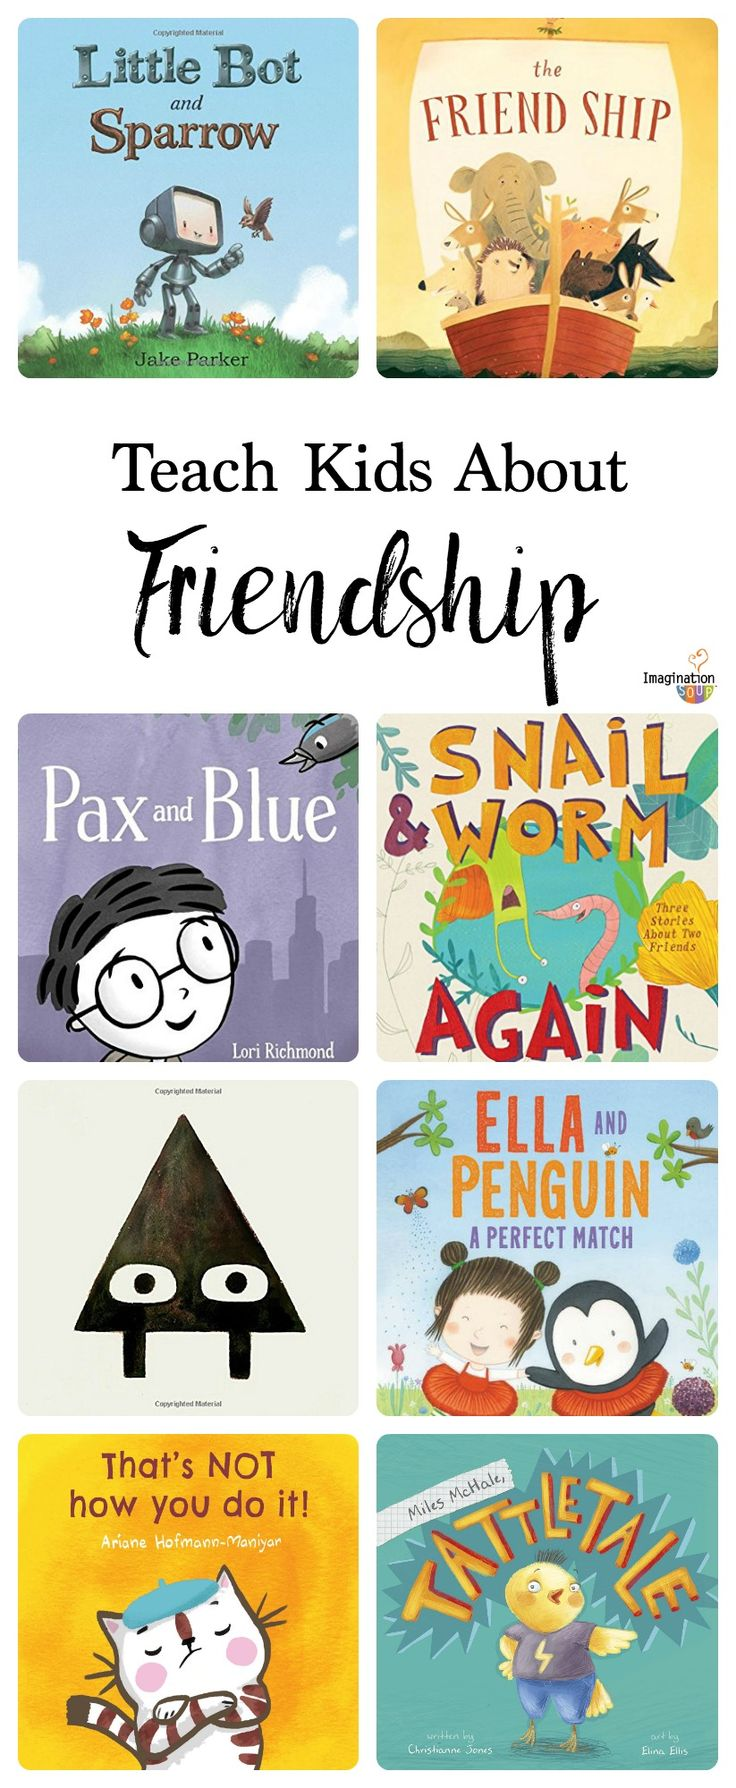 picture books that help teach kids about friendship